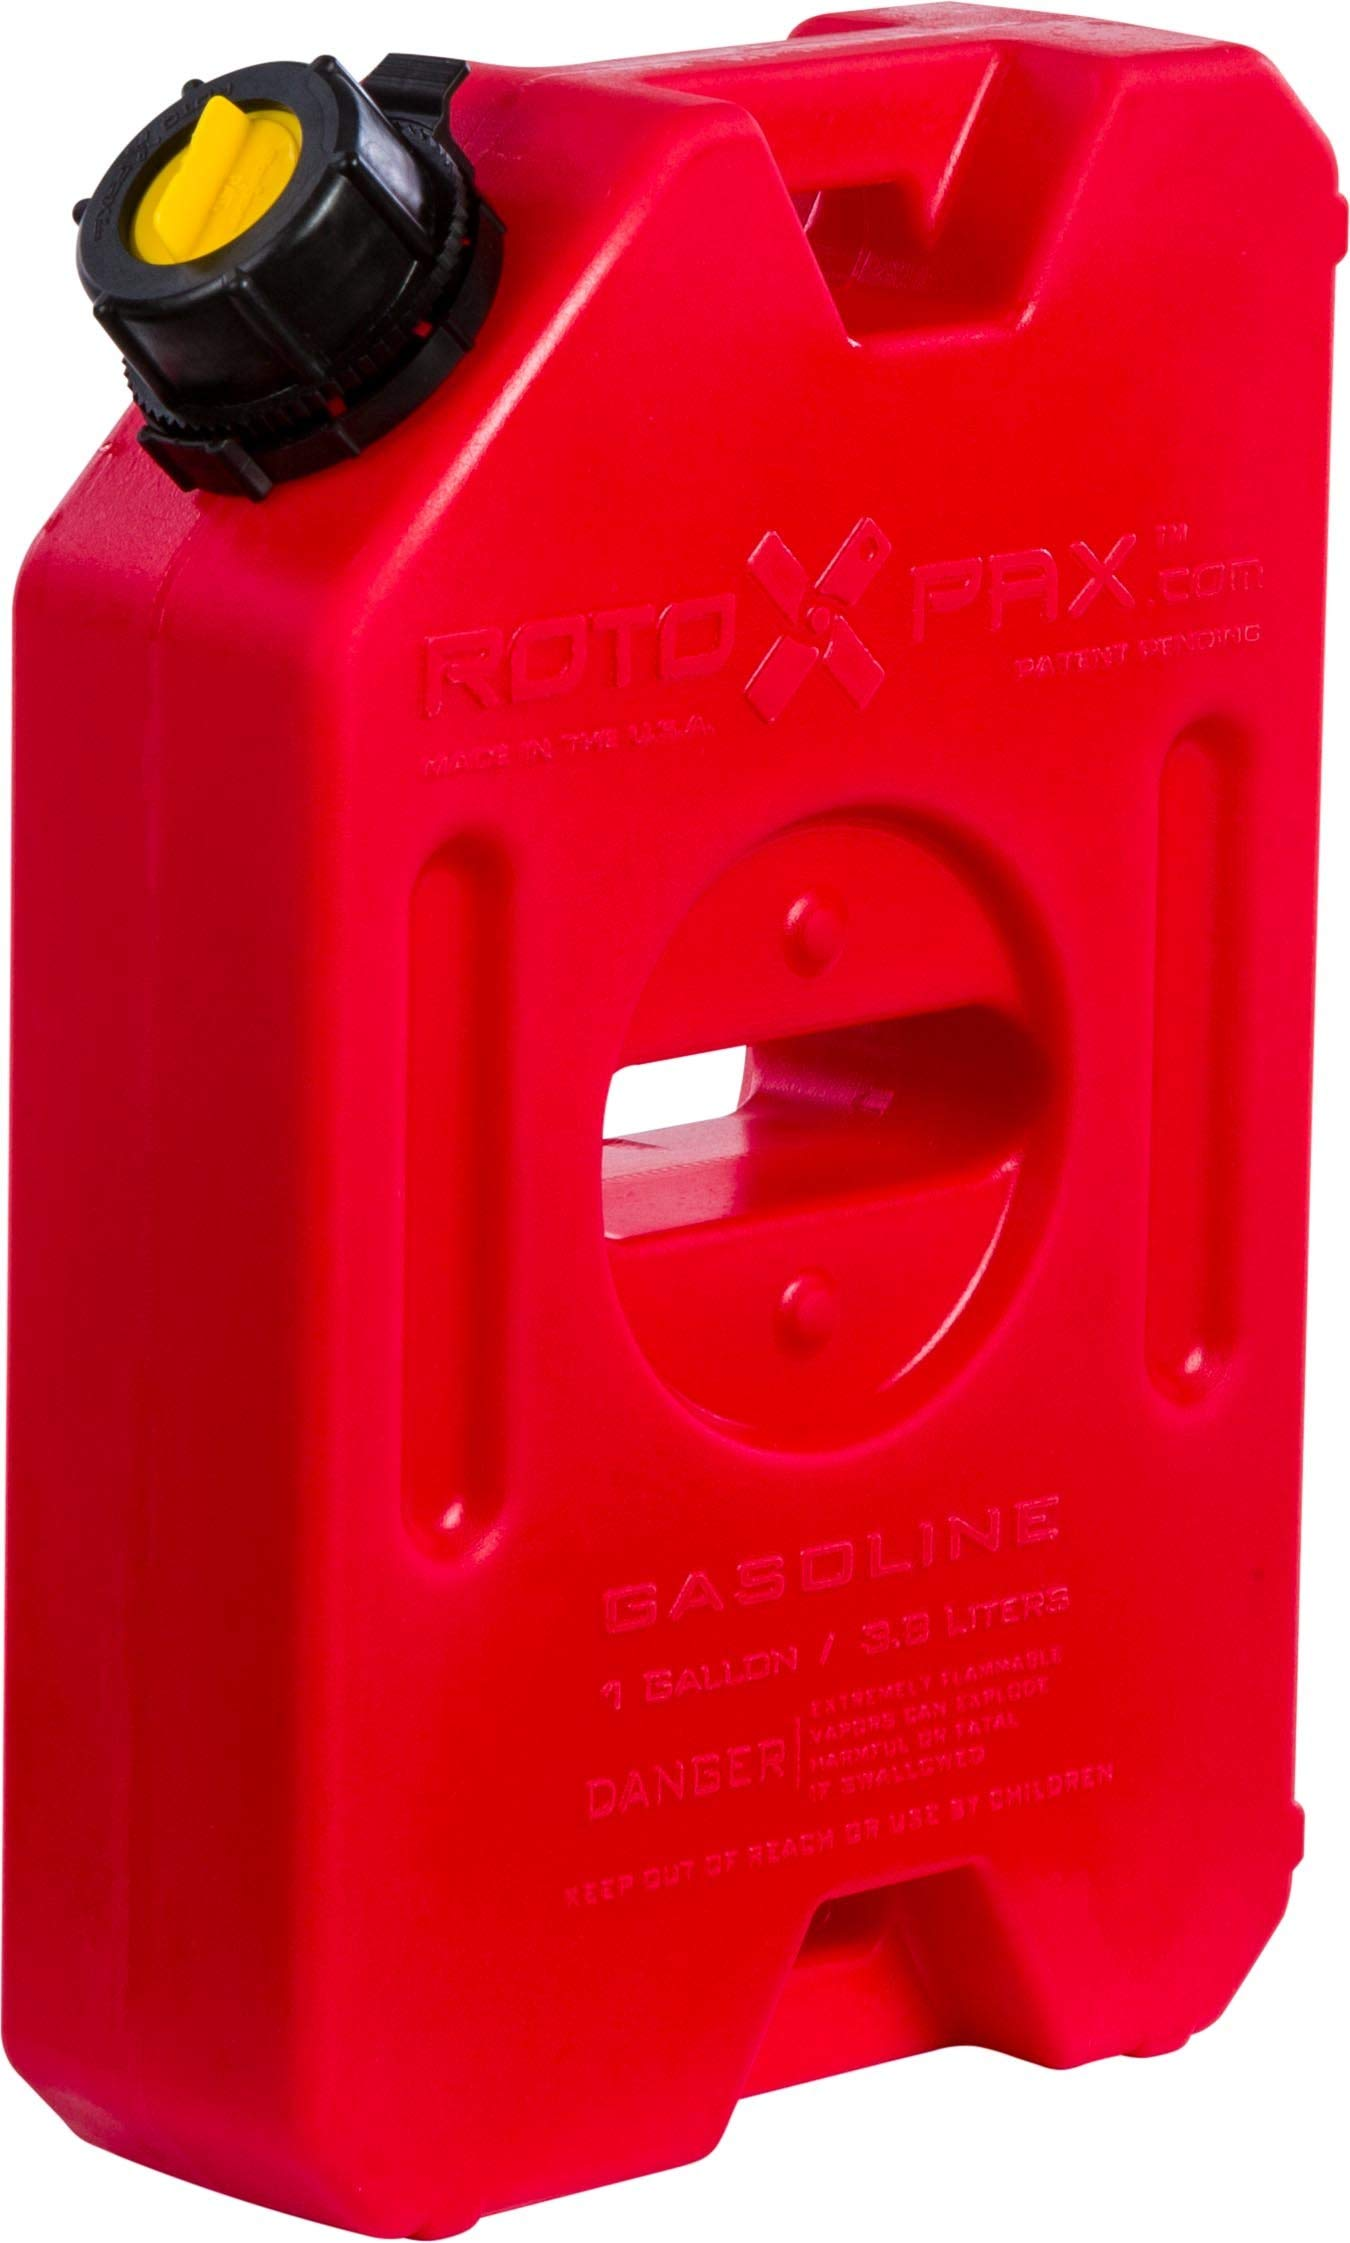 RotopaX RX-1G Gasoline Pack - 1 Gallon Capacity - Carb Compliant (1 Gallon) by RotopaX